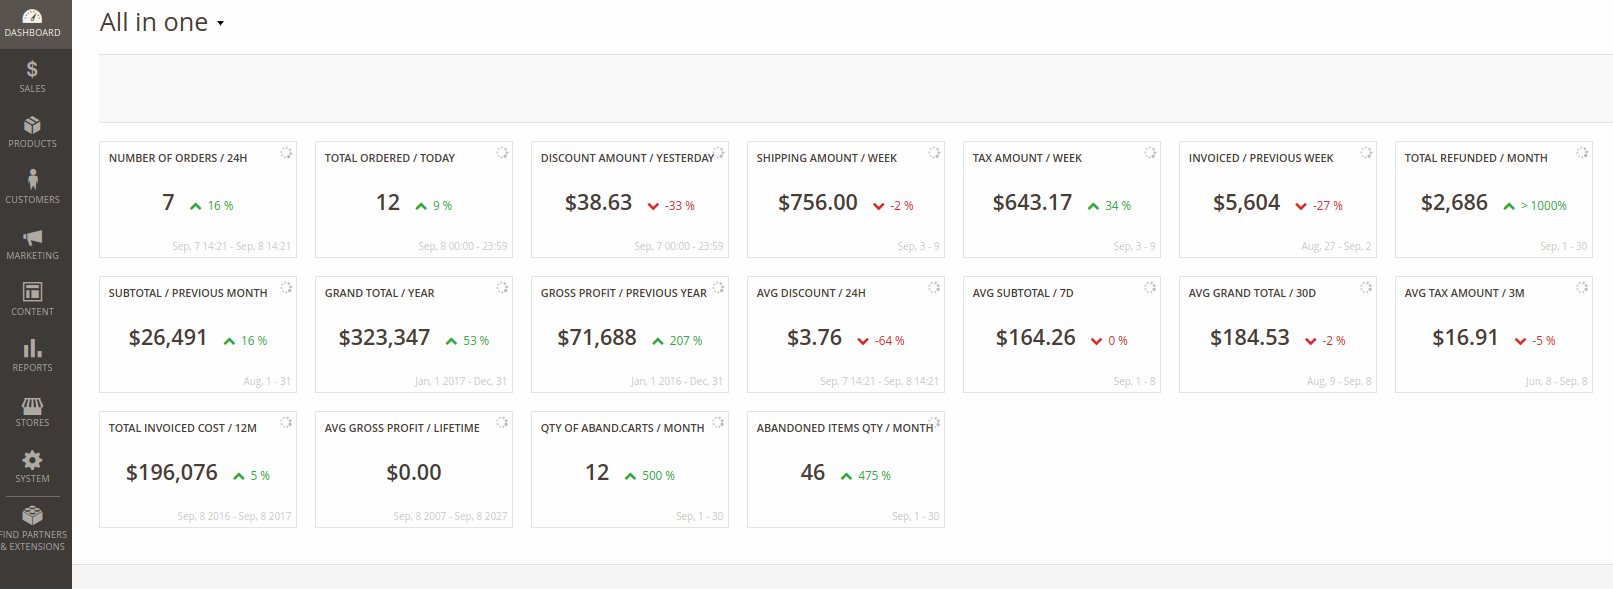 All in One dashboard